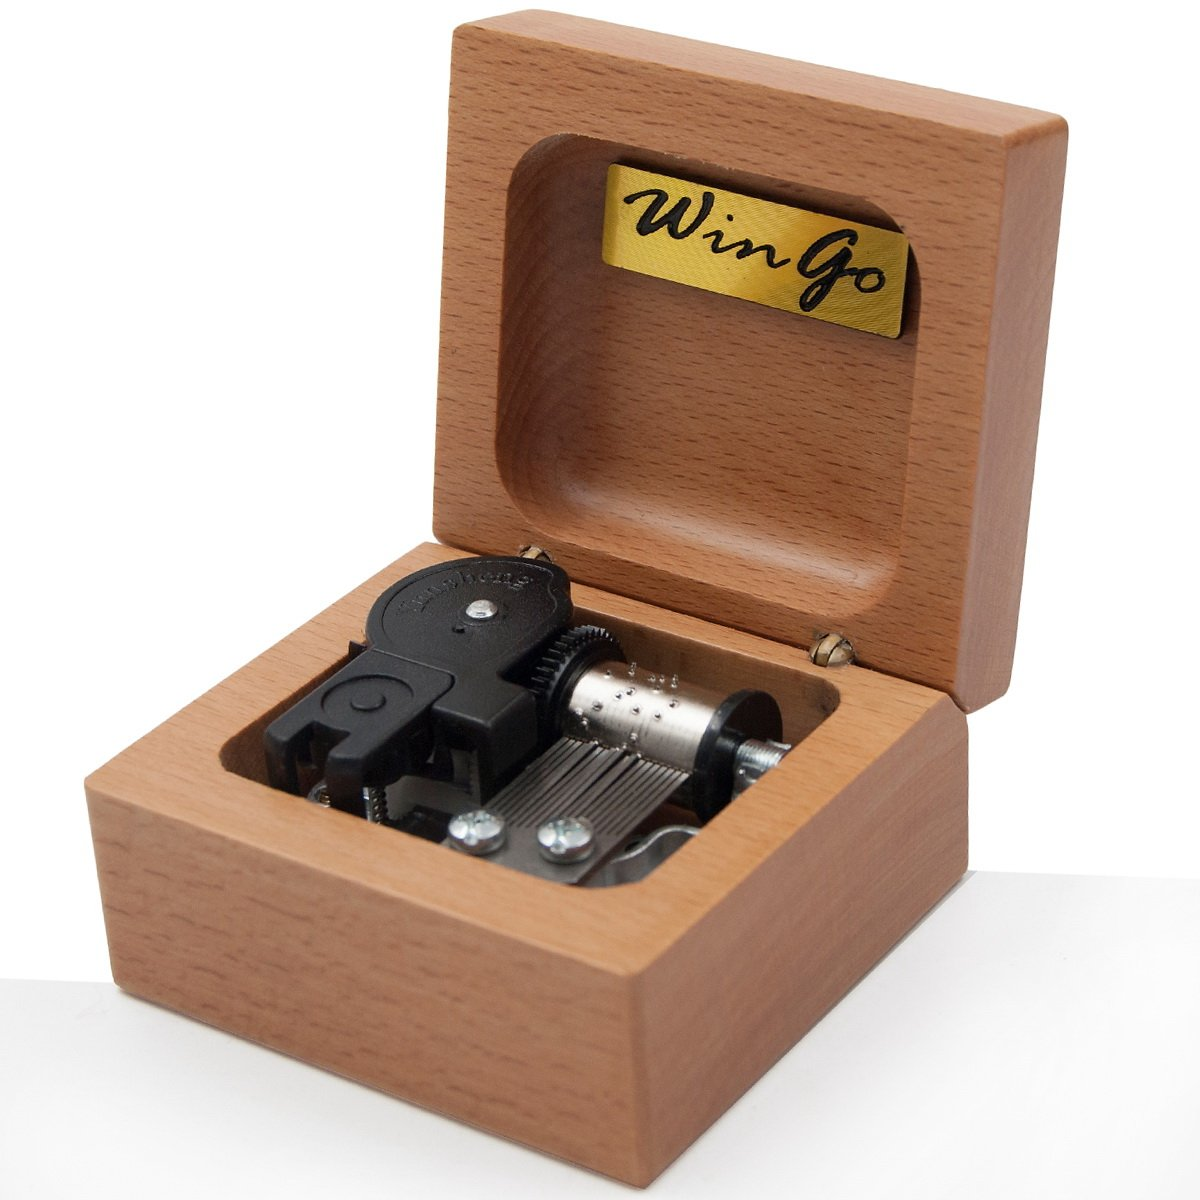 Mini 18 Note Wind-up Beech Wooden Music Box Tune of Fur Elise for Christmas/Birthday/Valentine's Day wingostore